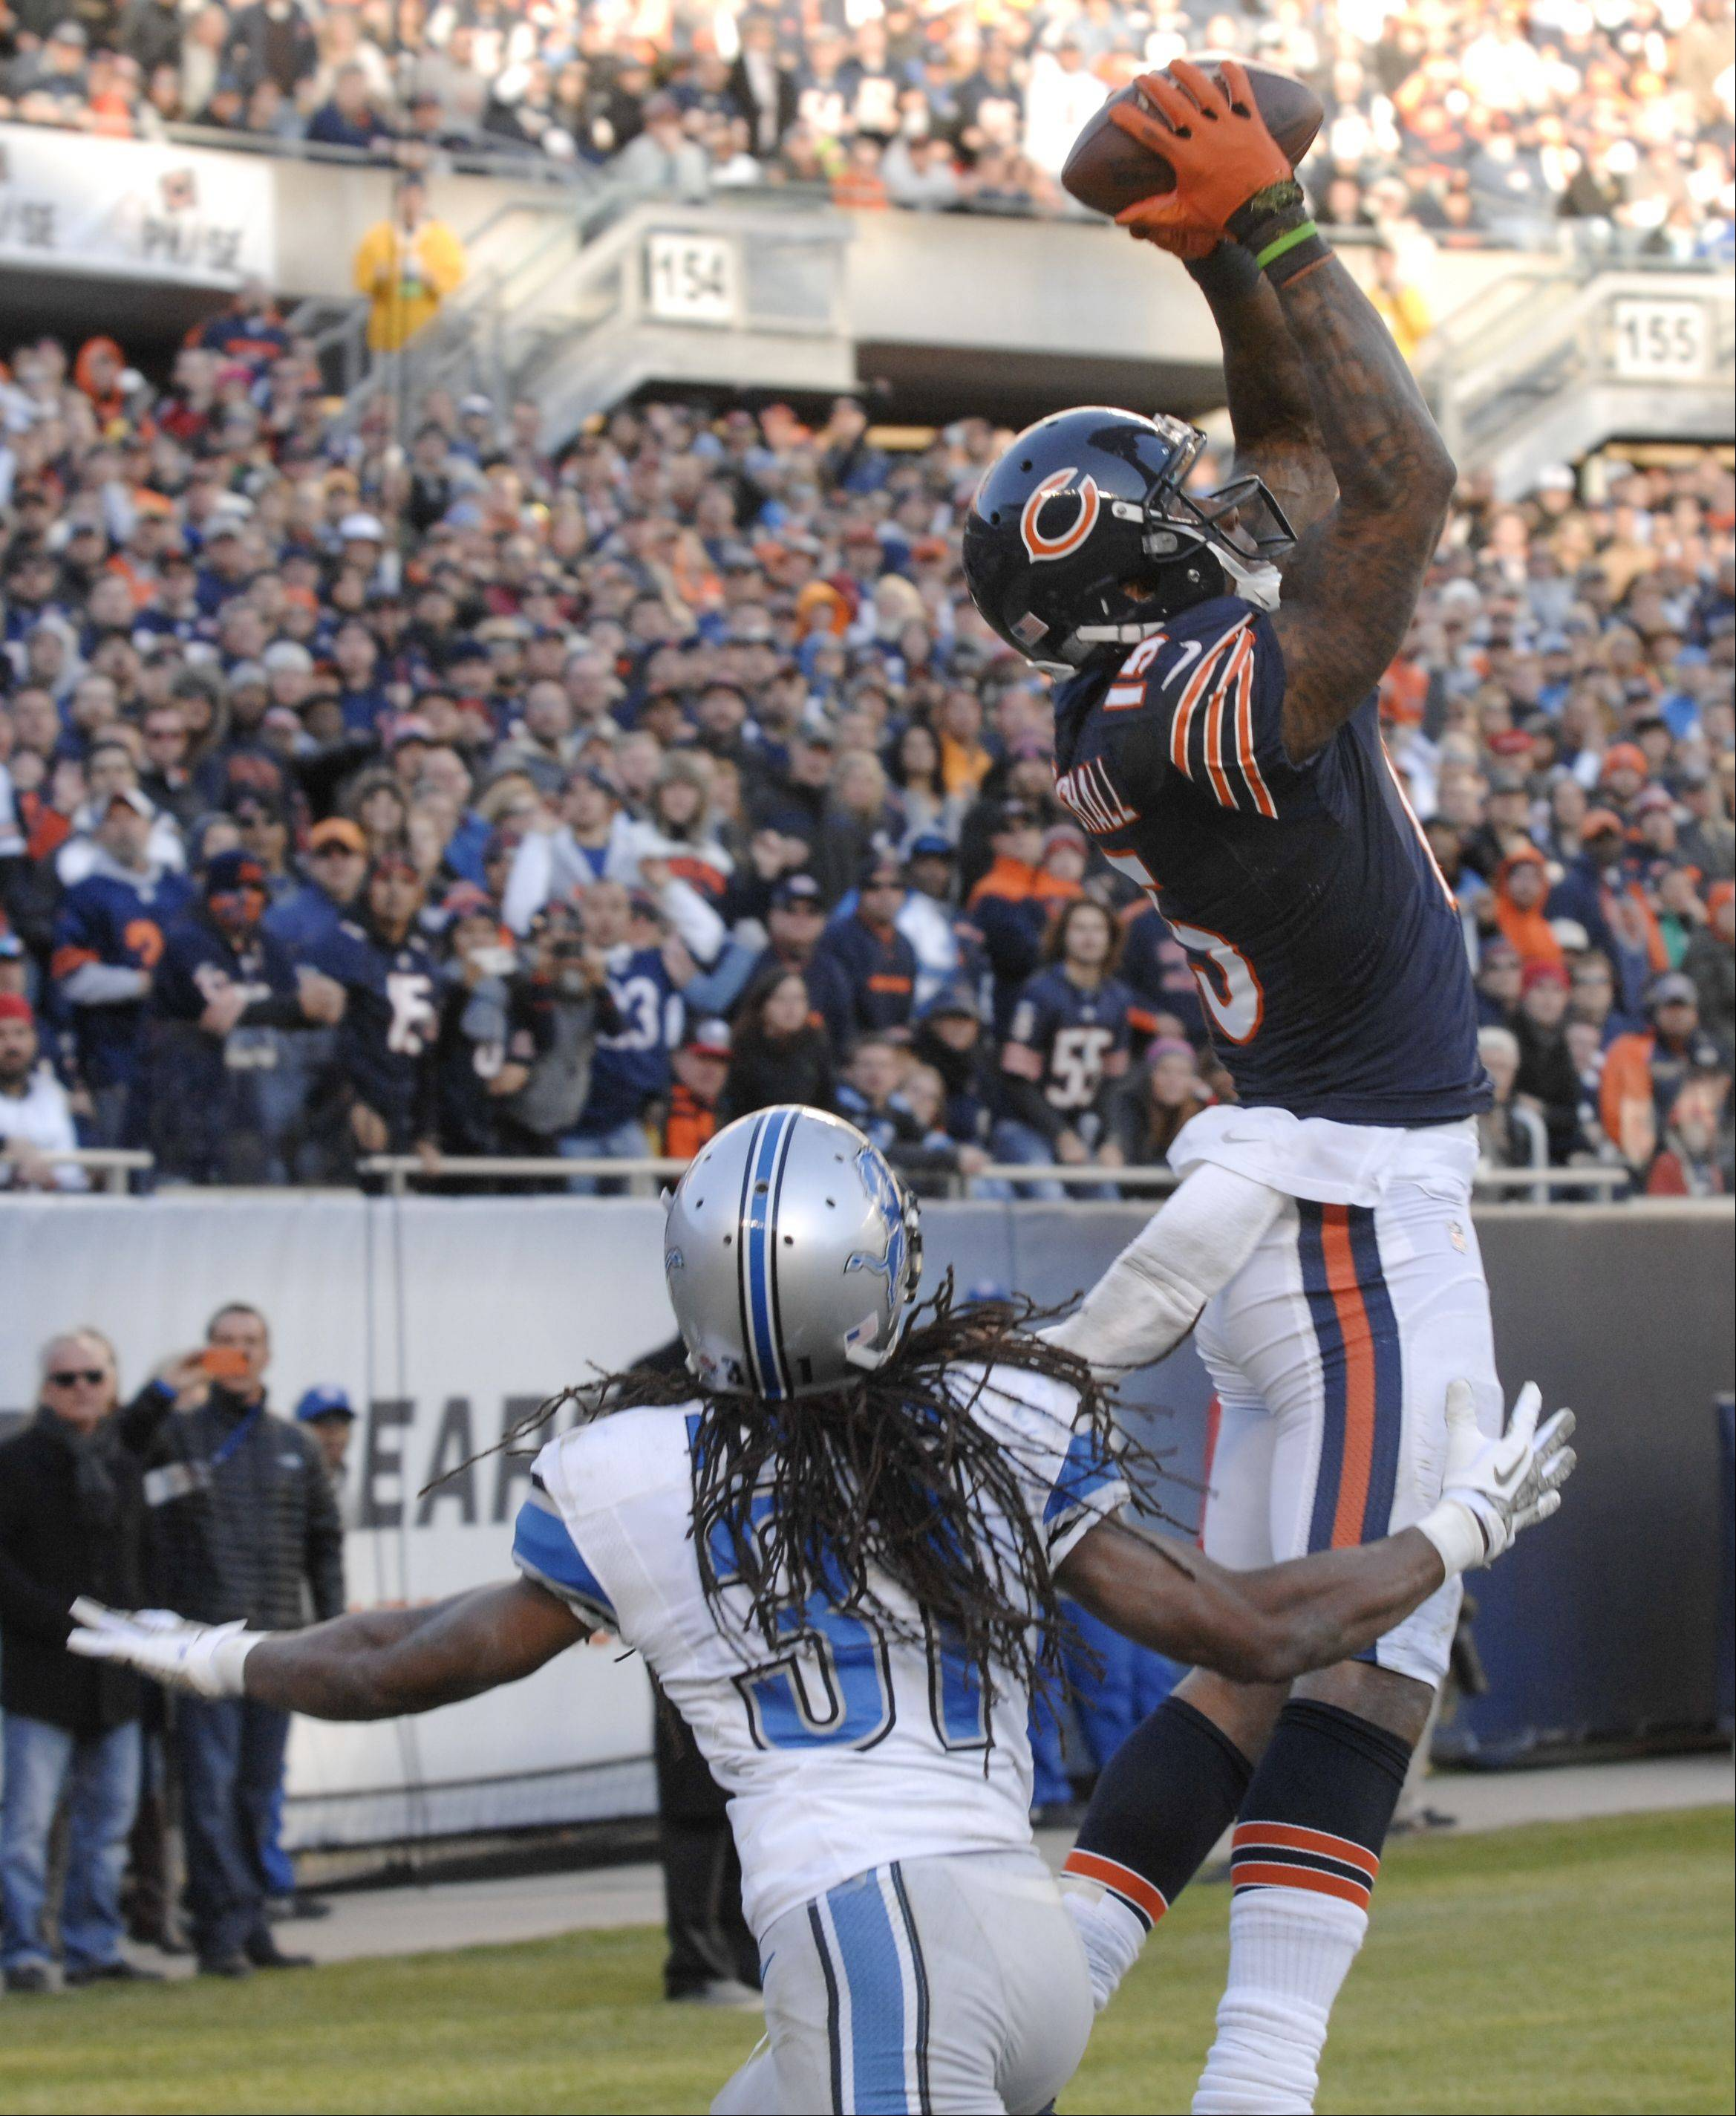 Chicago Bears wide receiver Brandon Marshall (15) scores a touch down the 4th quarter of the Bears 21-19 loss to the Detroit Lions.